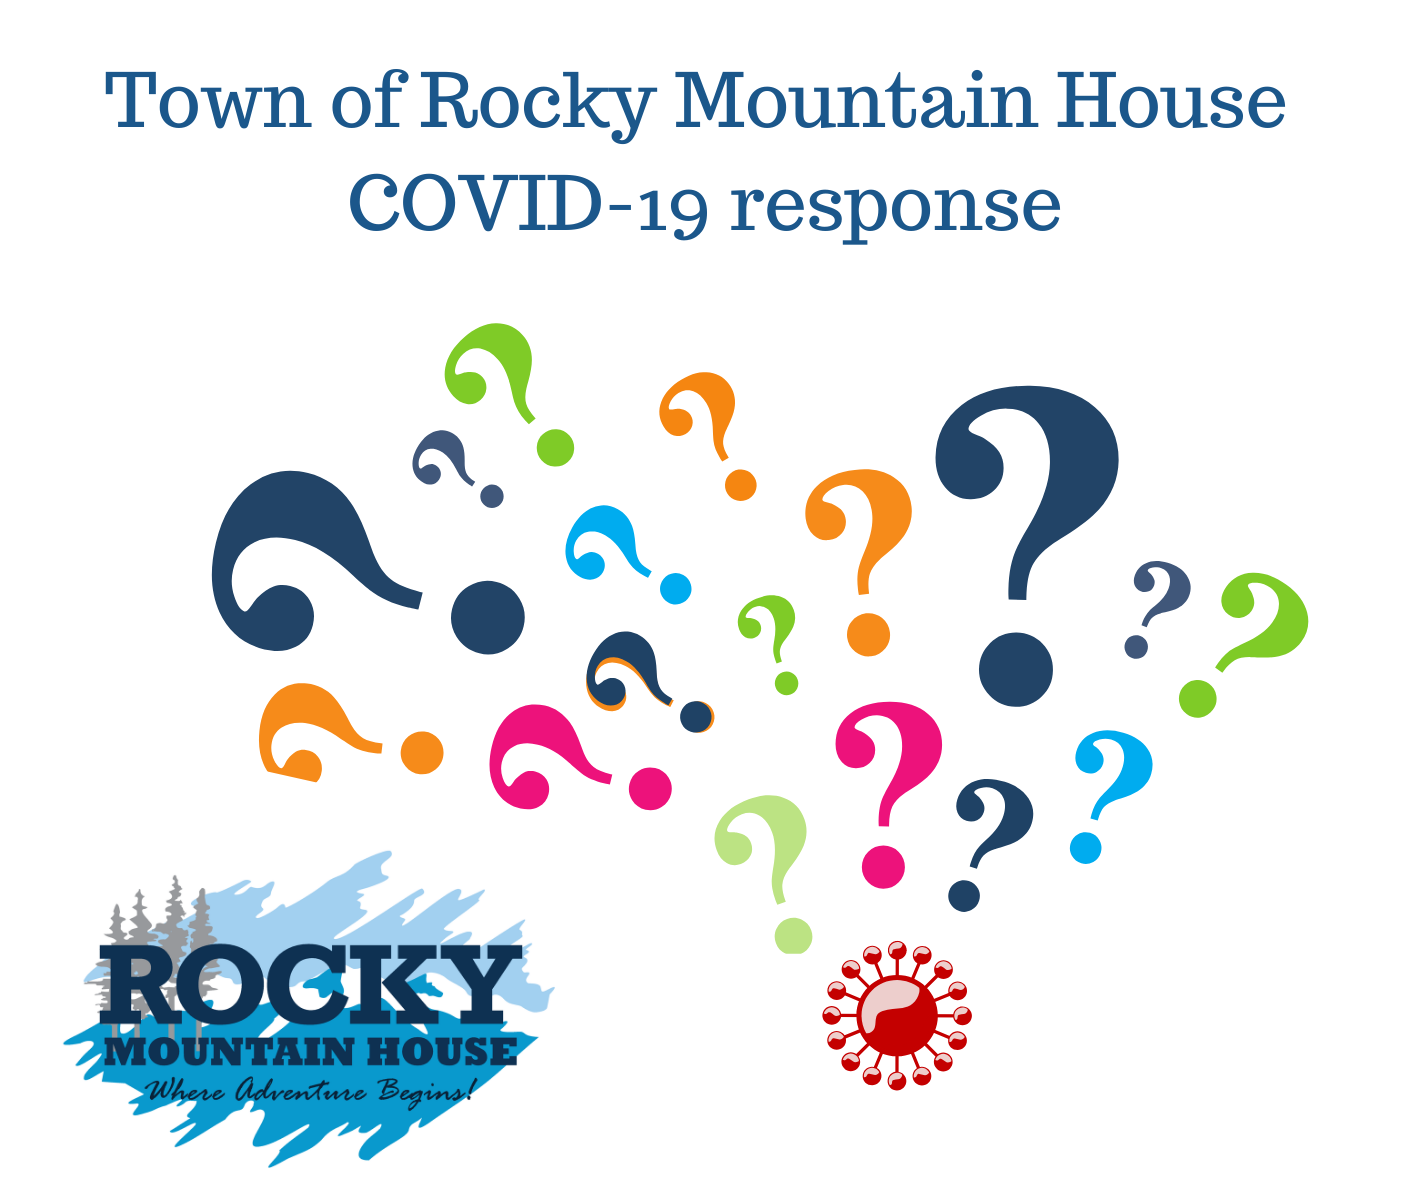 Town of Rocky Mountain House COVID-19 response